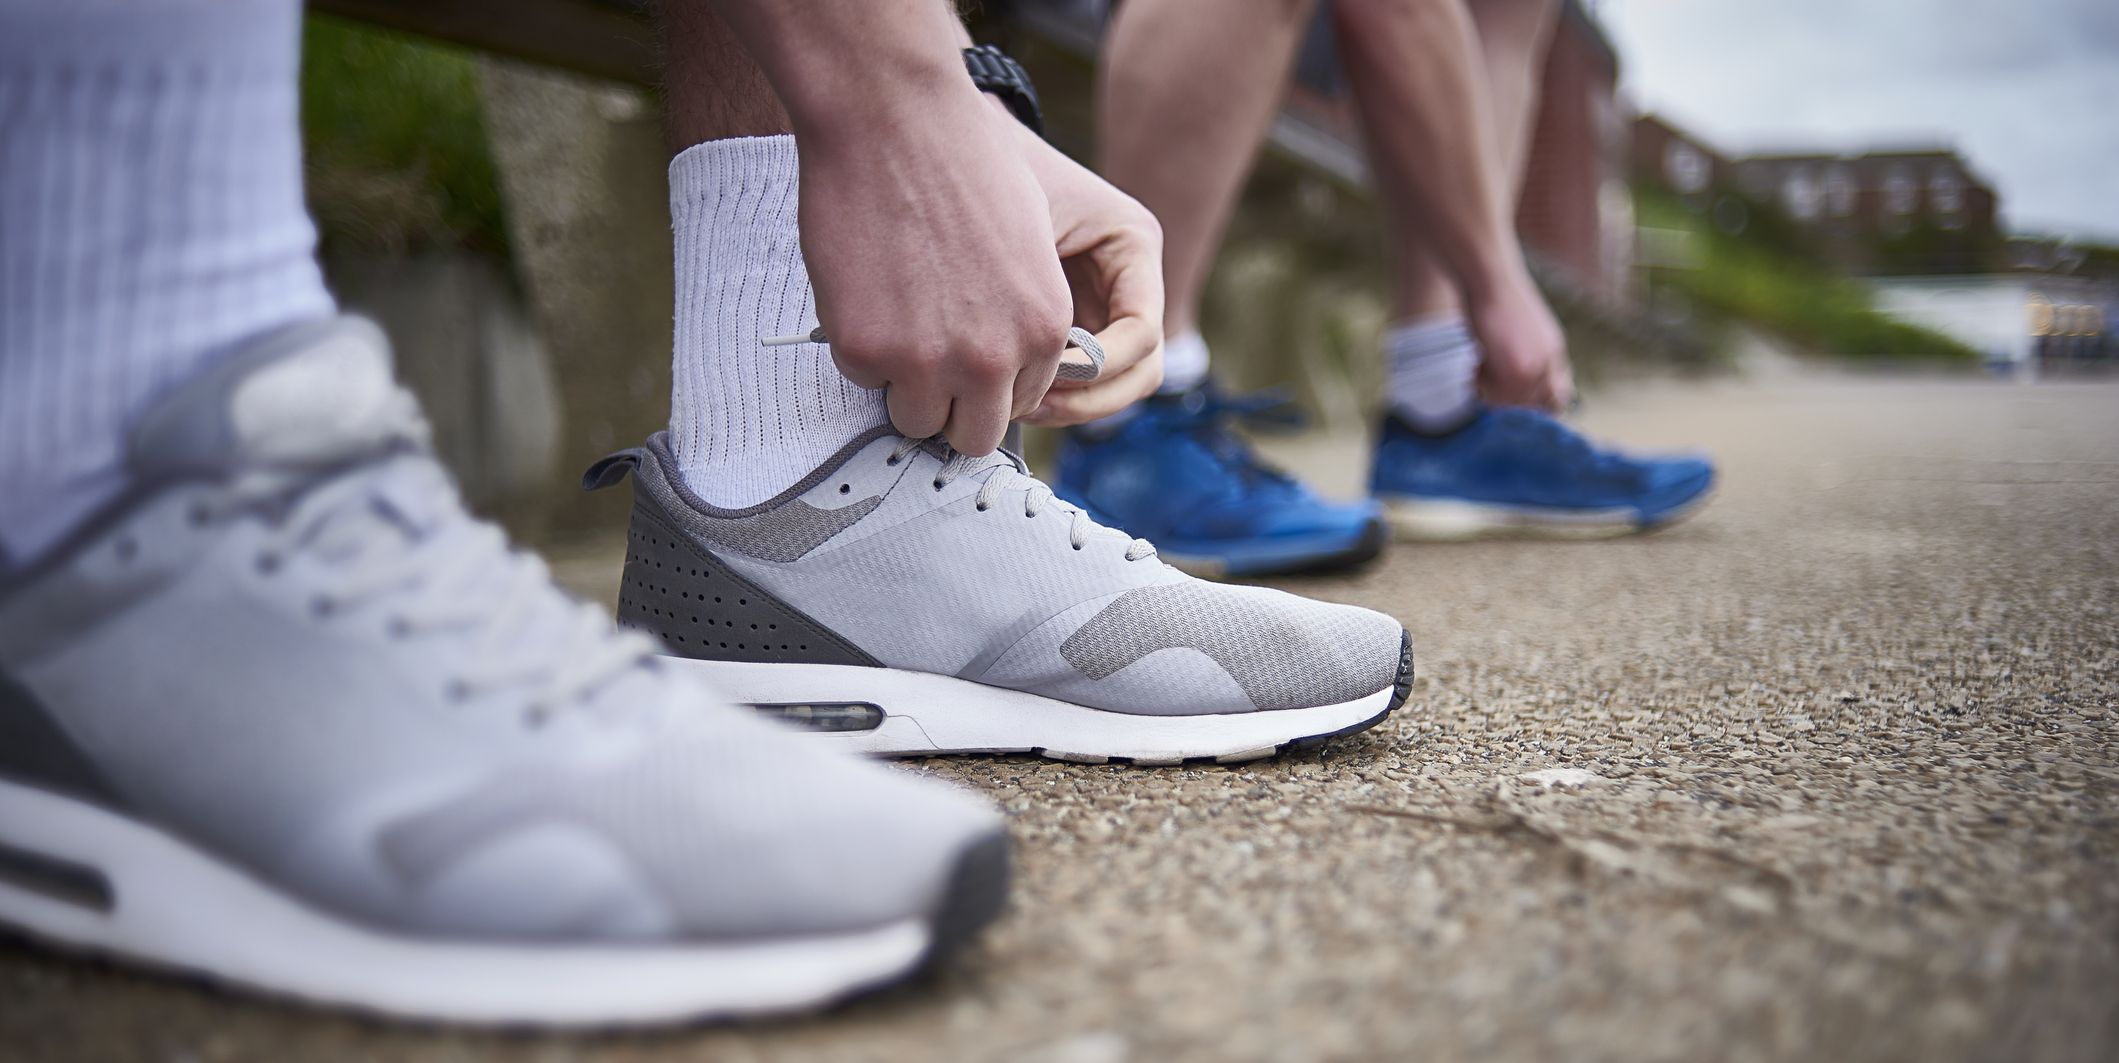 The Best Moisture-Wicking Socks to Keep Your Feet Cool